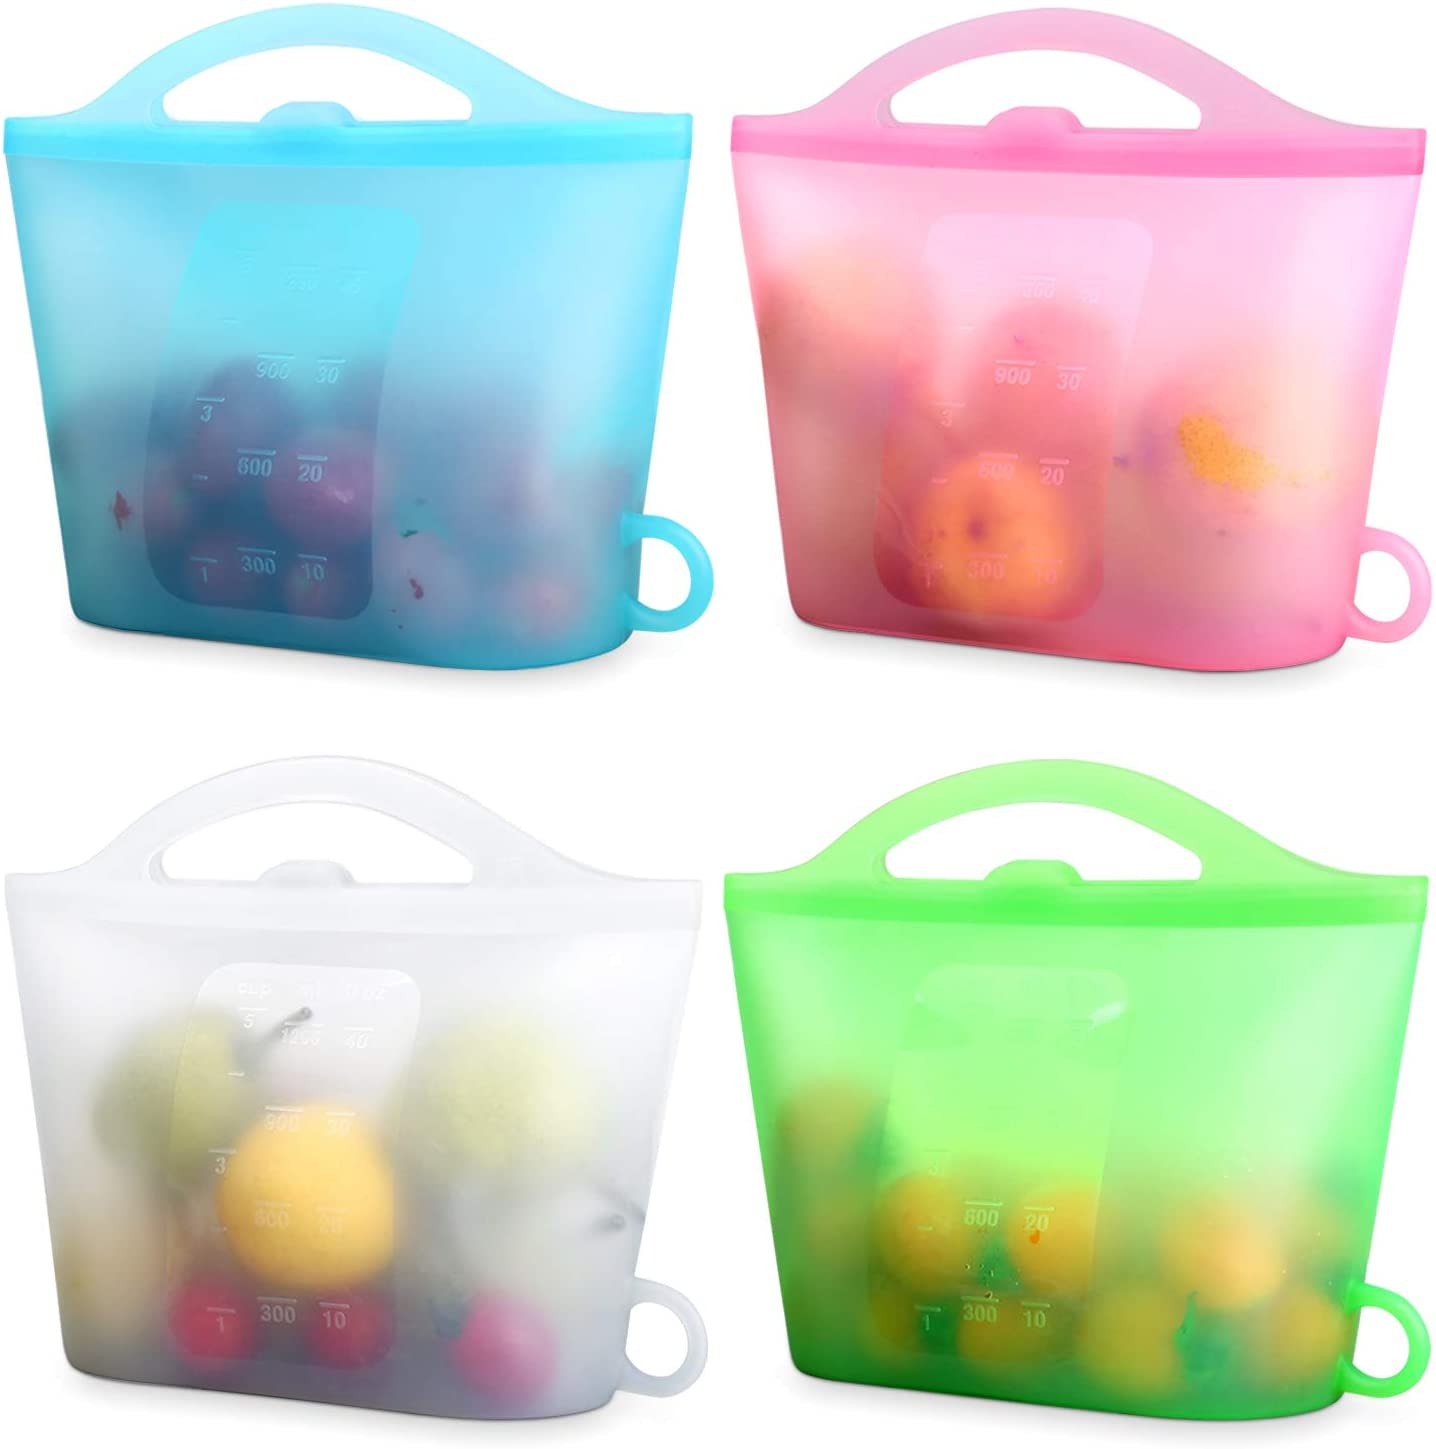 XUANMEIKE Food Grade 100% Silicone Storage Bag 4 Packs of Reusable Food Storage Bags (Upright), Suitable for Storage of Various Foods Freezing, Keeping Fresh, Cooking, Heating (Blue White Pink Green)